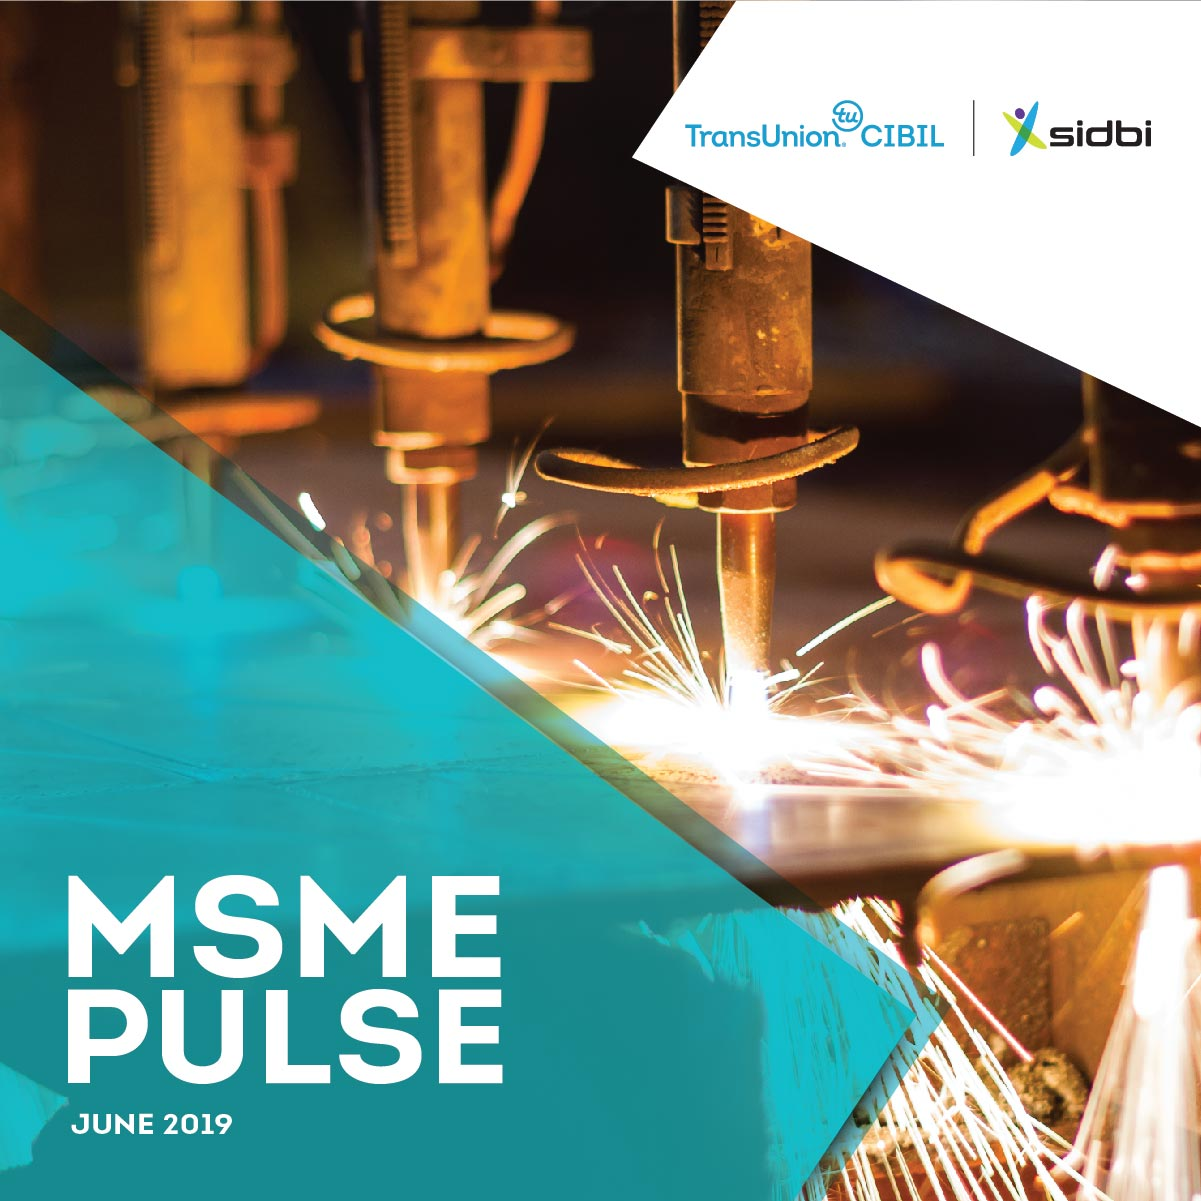 Image of MSME-Pulse report